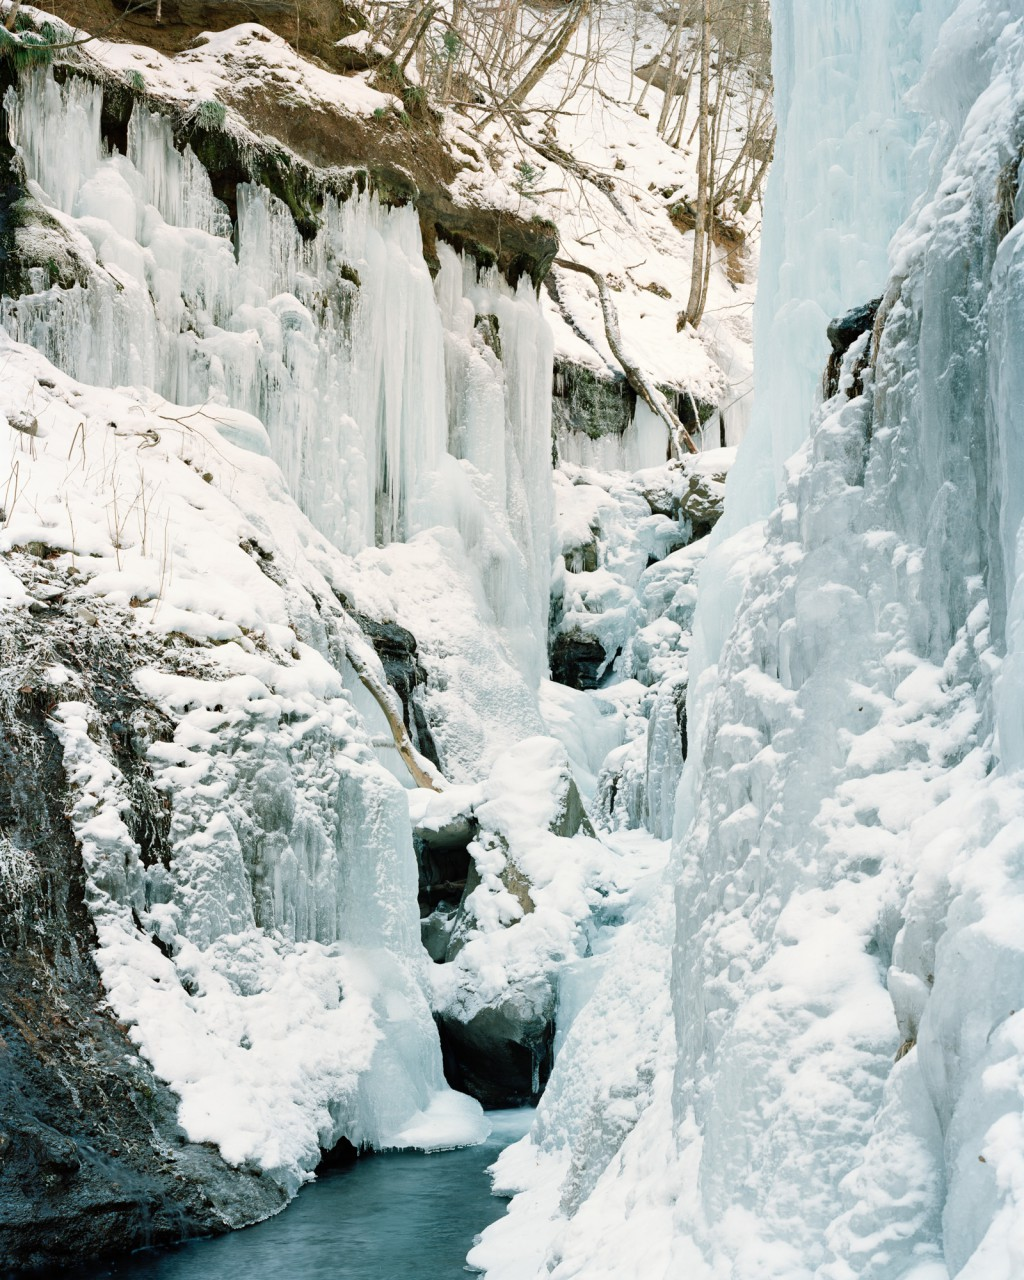 140306_icefall_007_s-1024x1280